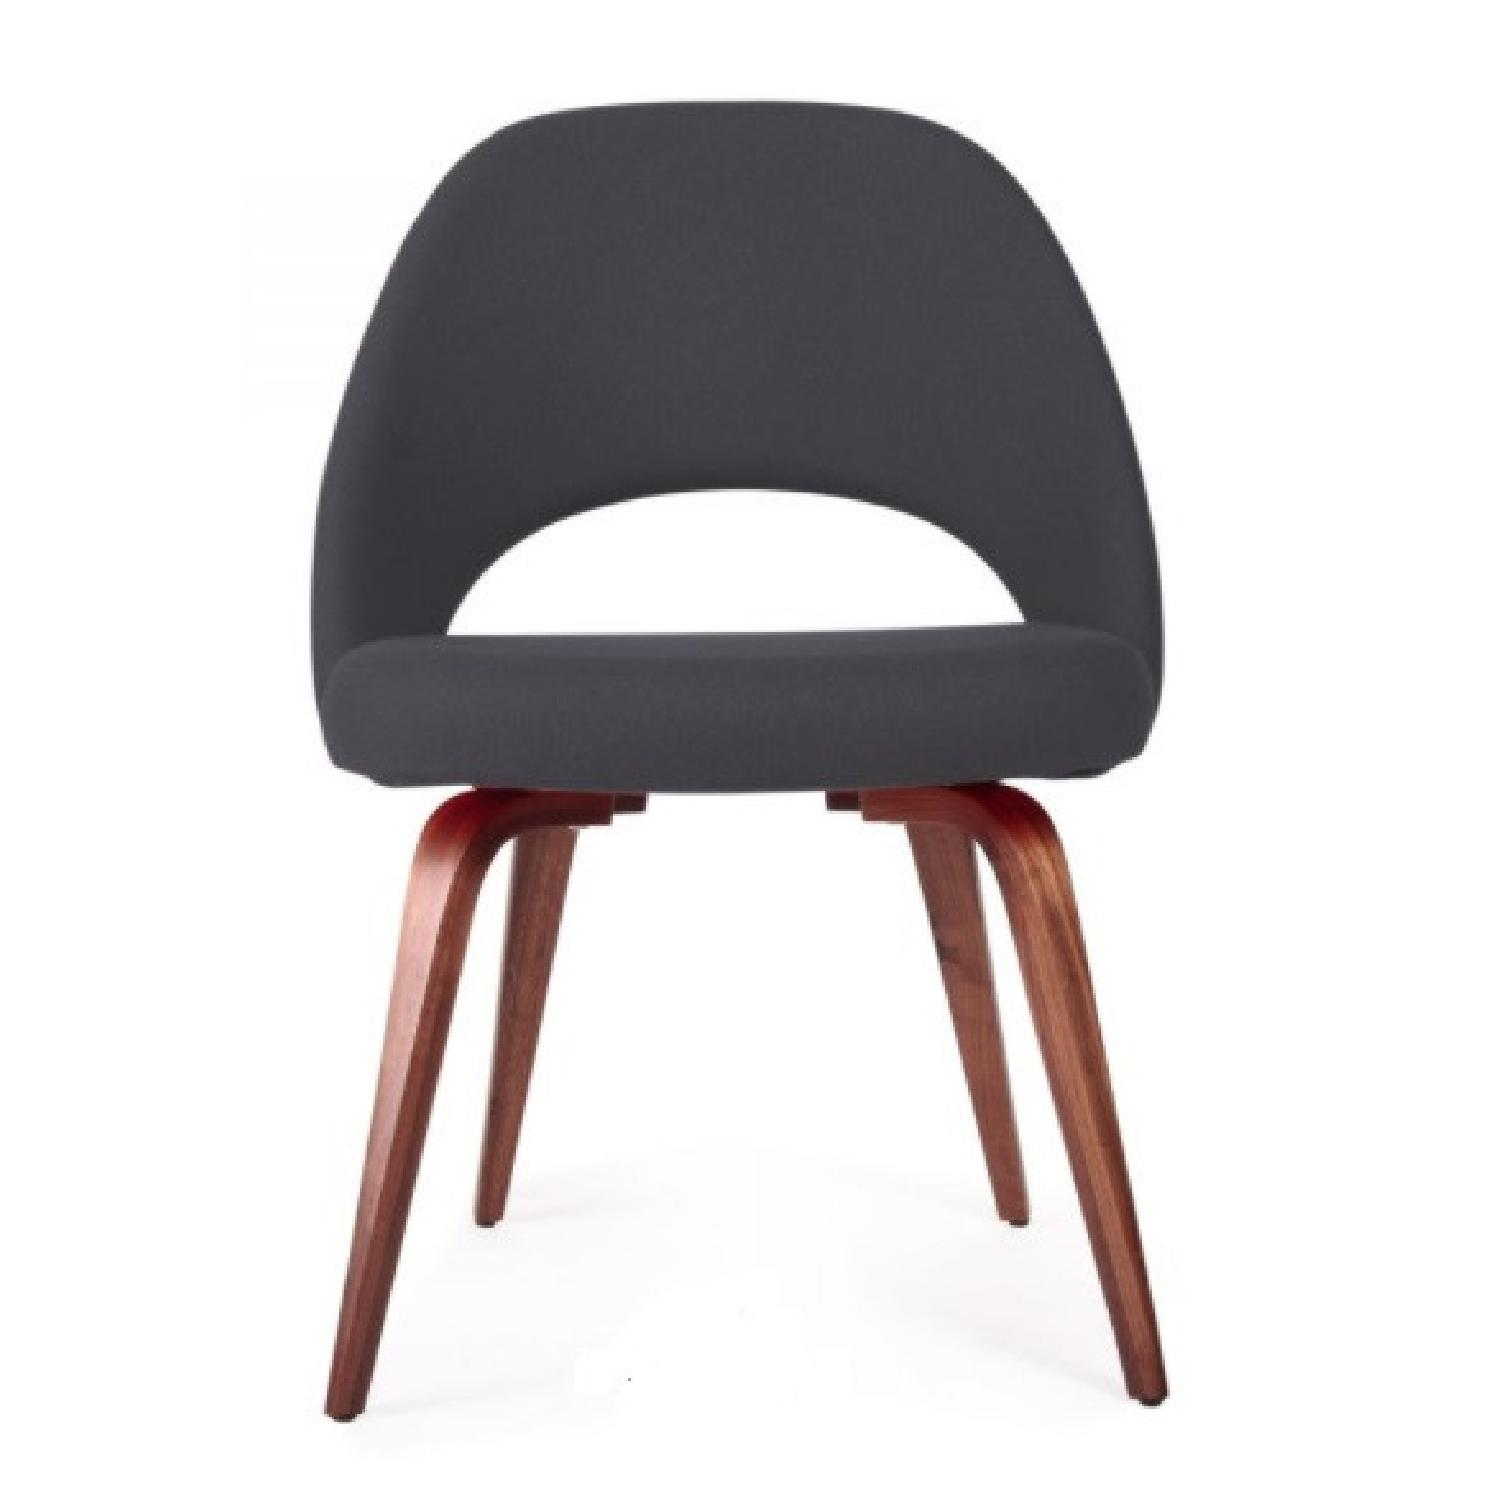 Upholstered Dining Chairs Mid-century Modern Style - image-4